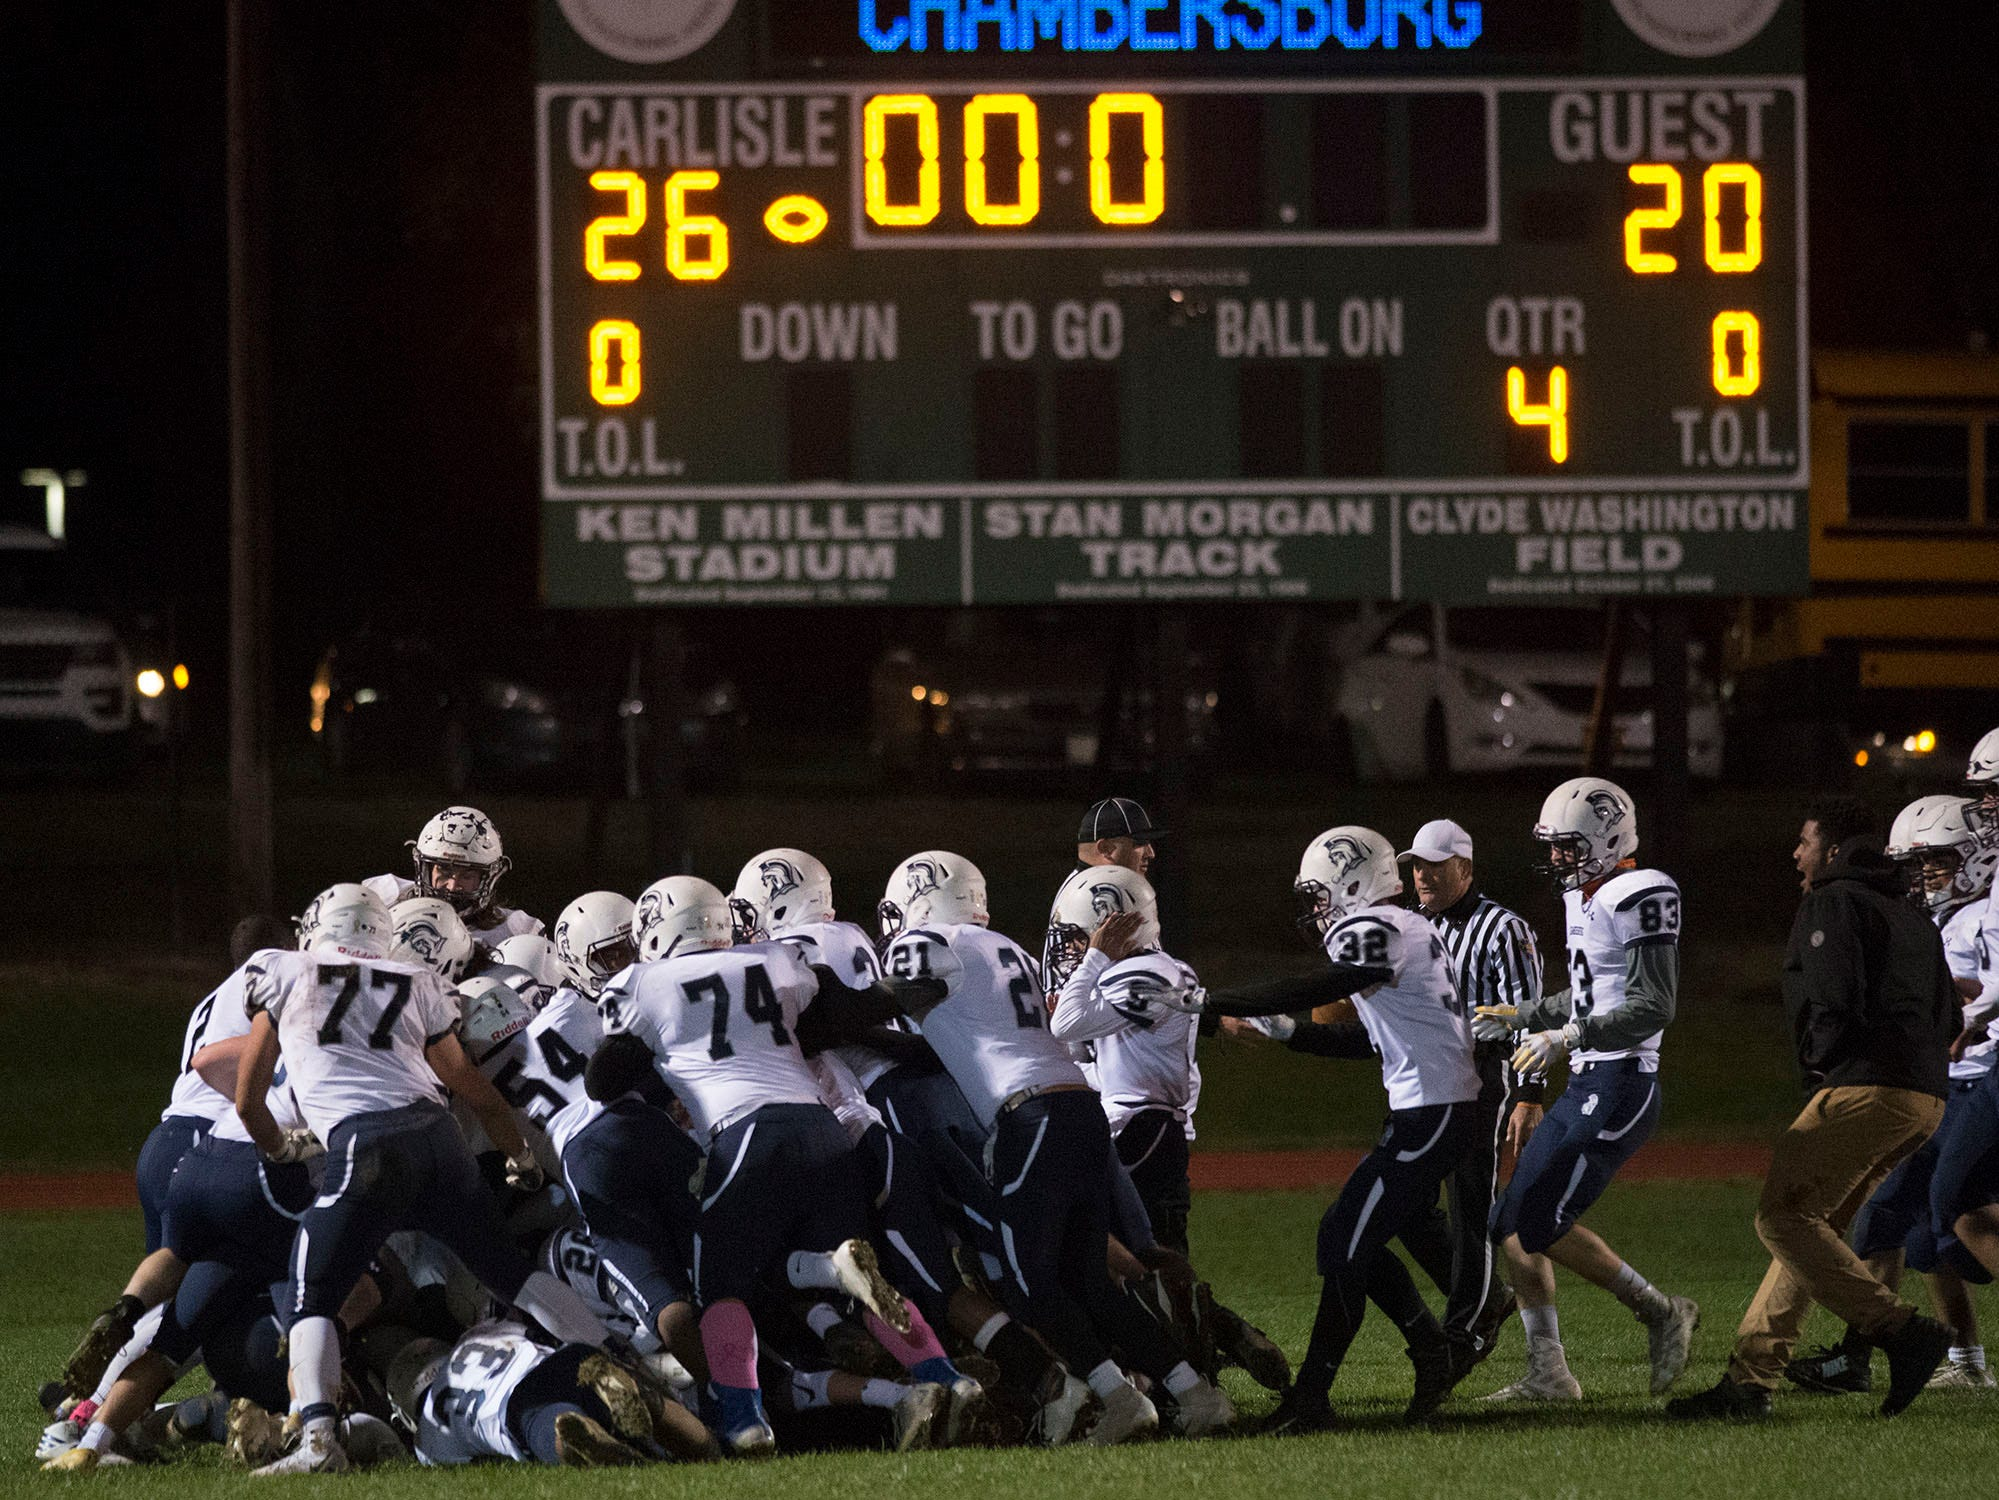 Chambersburg celebrates a spectacular finish to their regular season during a 26-20 Trojan victory on Friday, October 26, 2018..